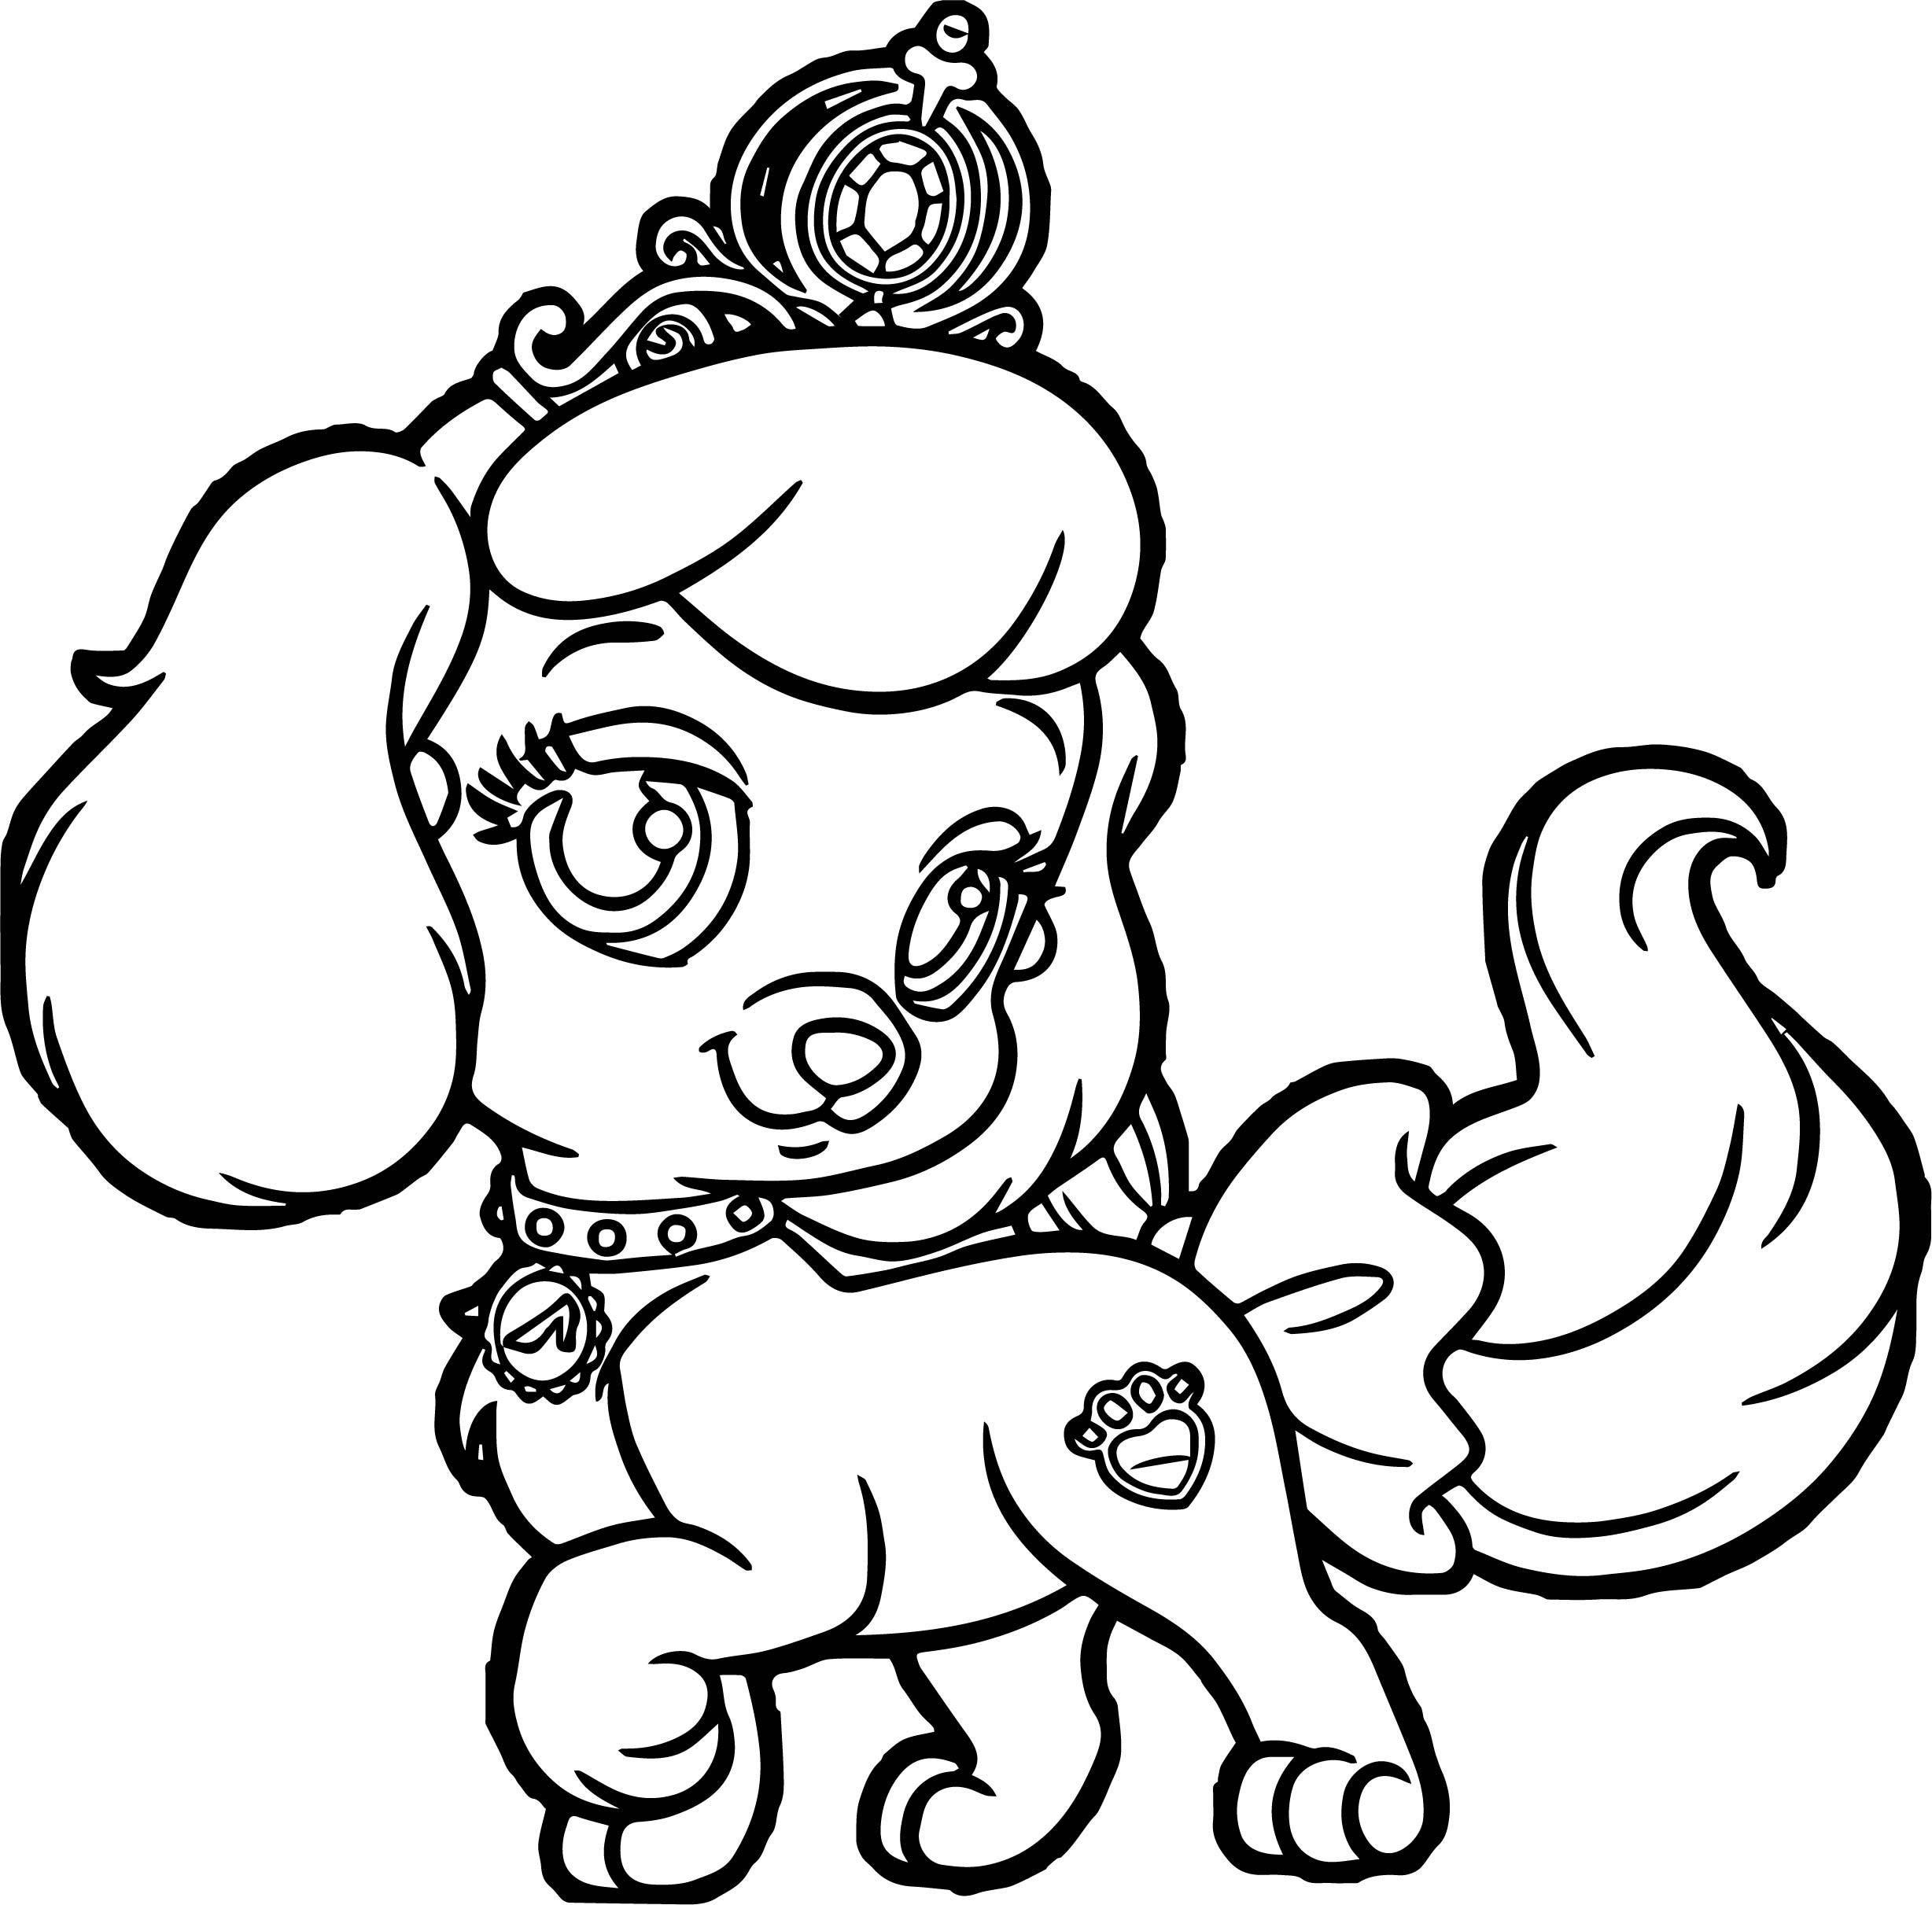 dog colouring in baby dog coloring page free coloring pages online dog in colouring